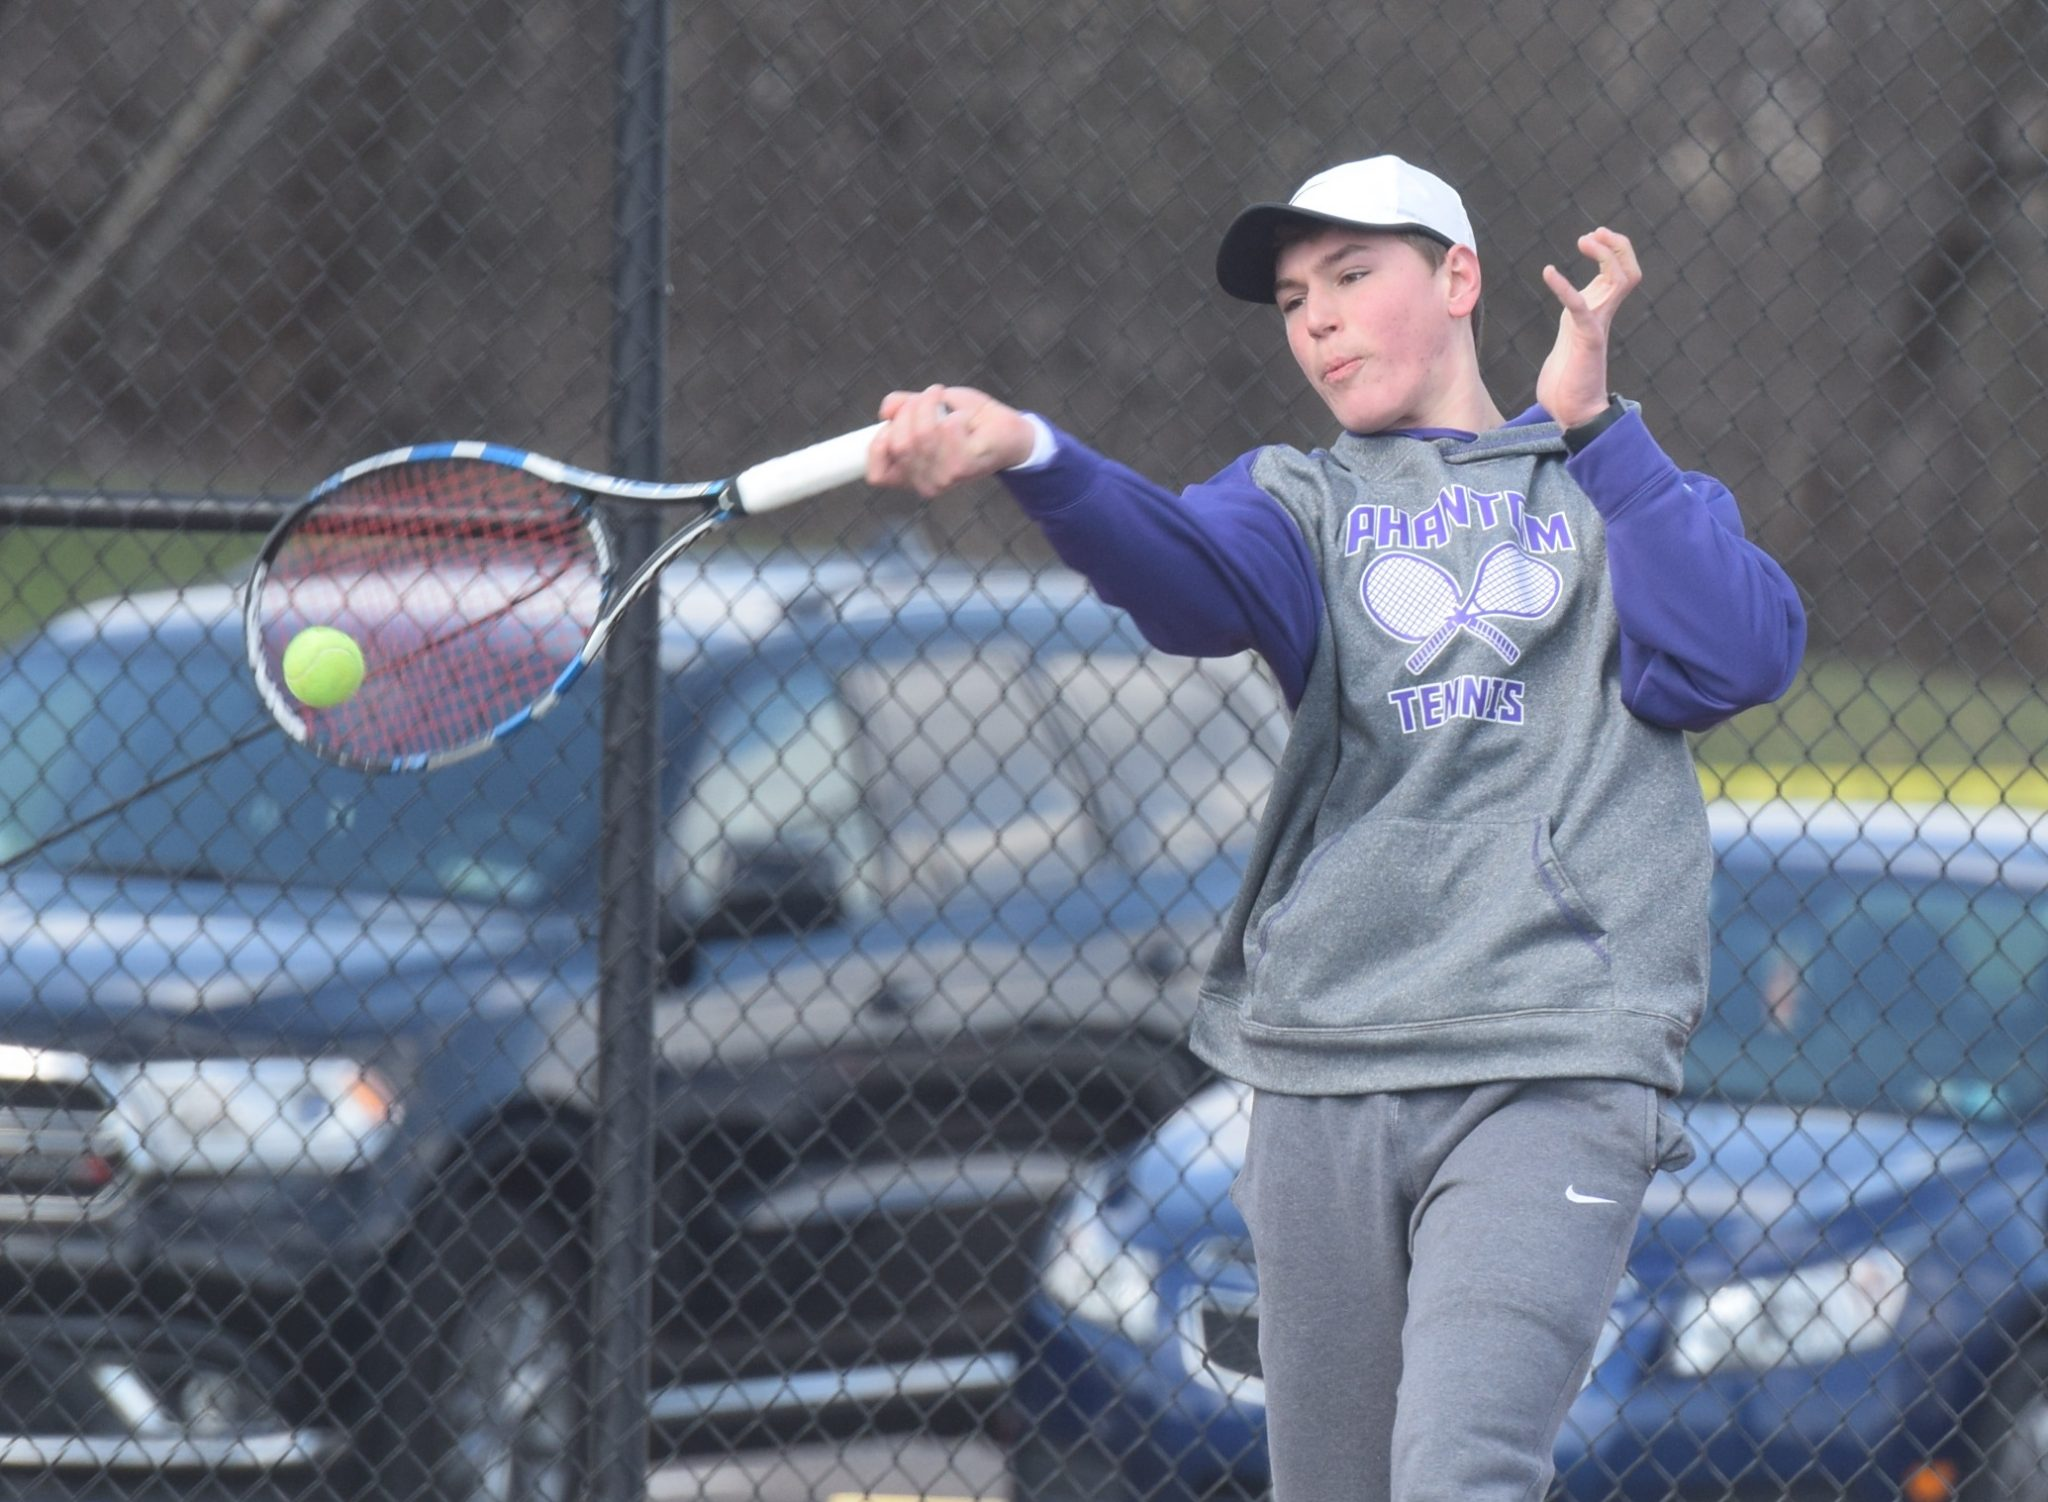 singles in phoenixville Phoenixville rolled in singles play, getting a 6-2, 6-2 win at no 1 from julia gumieniak over elaina lee while gina brown and alex rieg were straight-set.